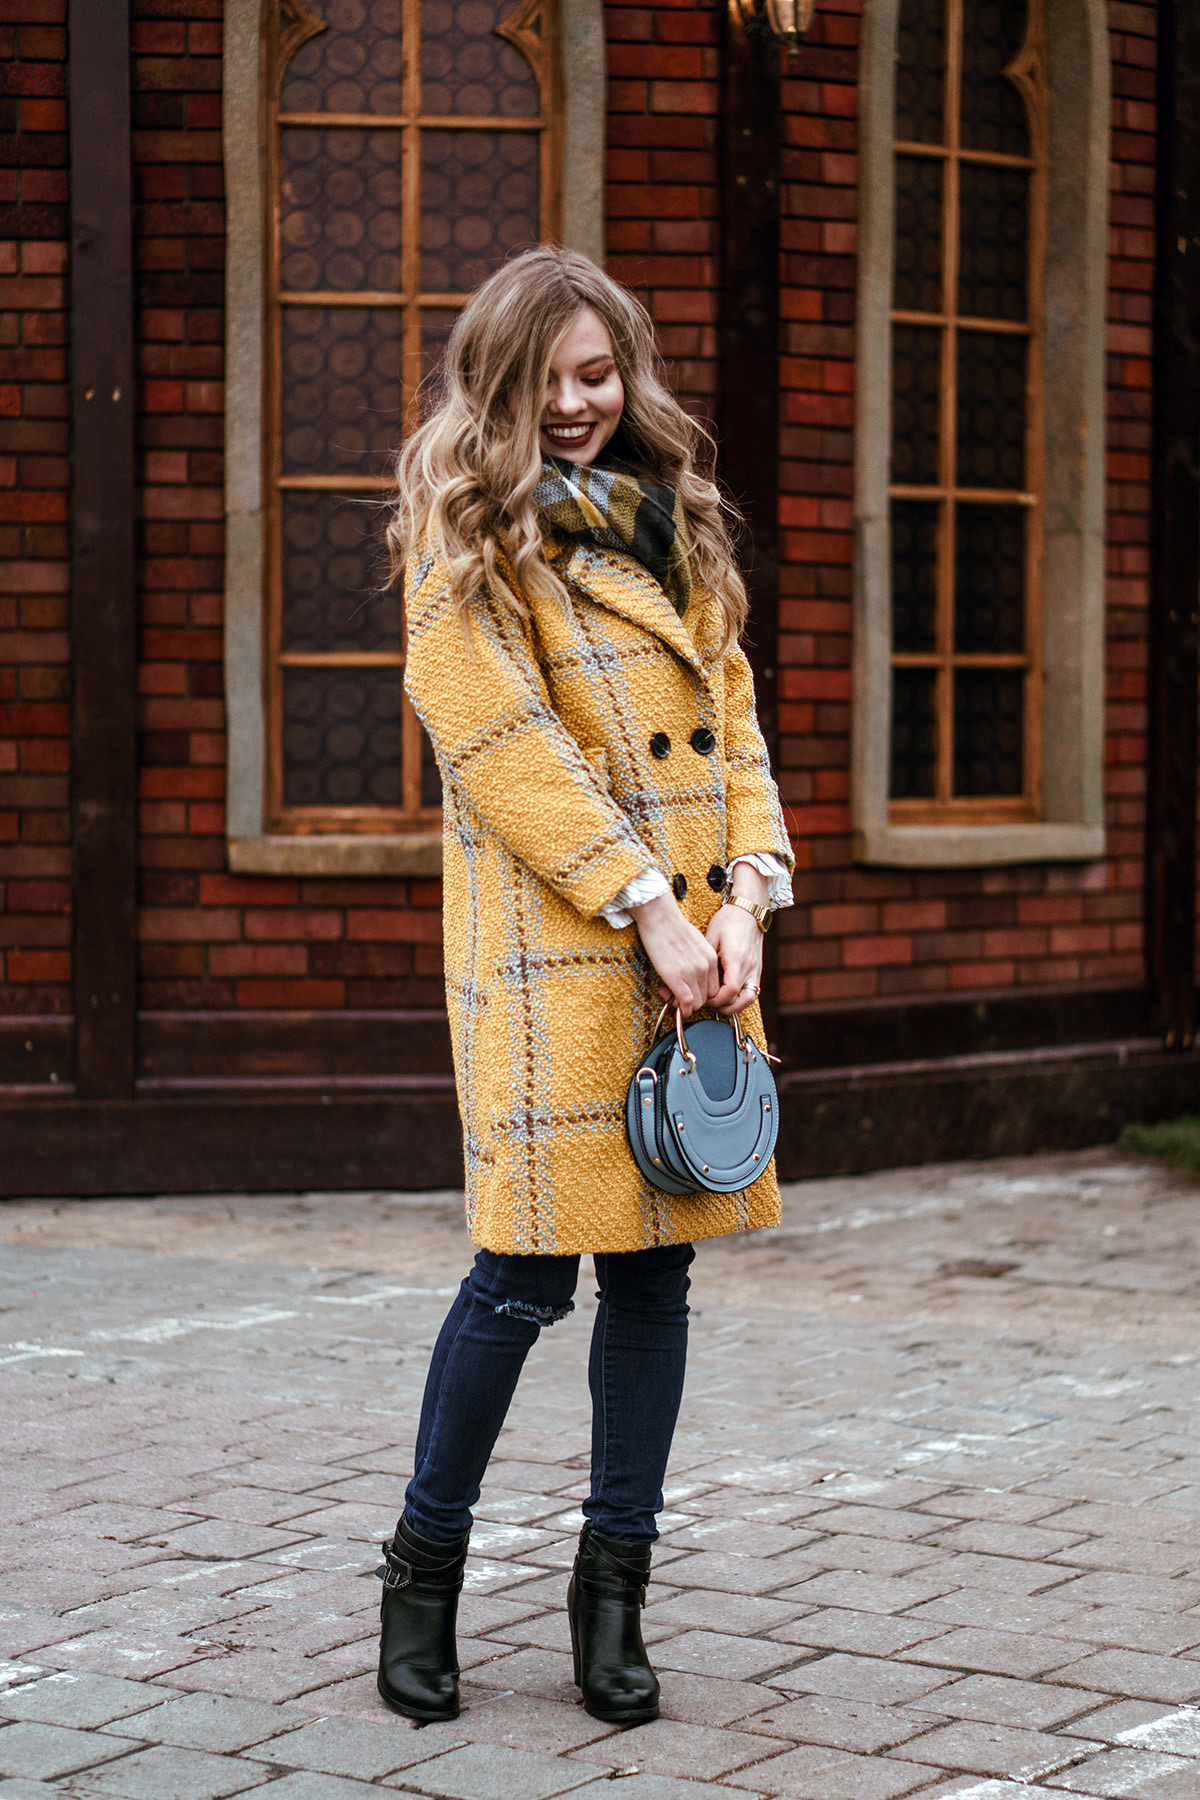 yellow coat winter outfit christmas market pink. Black Bedroom Furniture Sets. Home Design Ideas